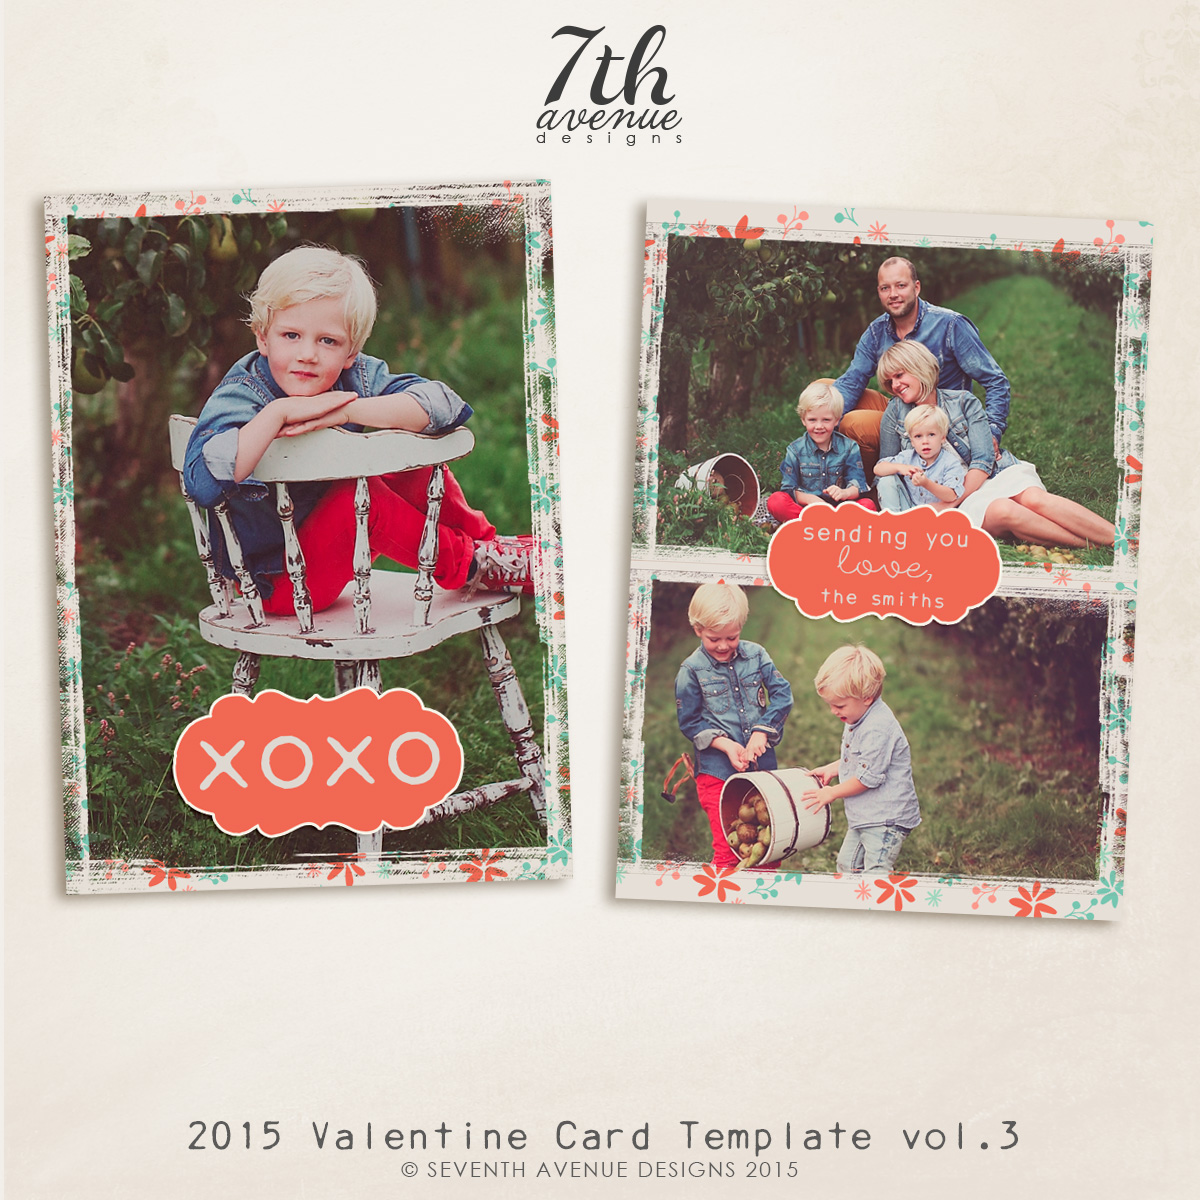 2015 Valentines Card vol.3